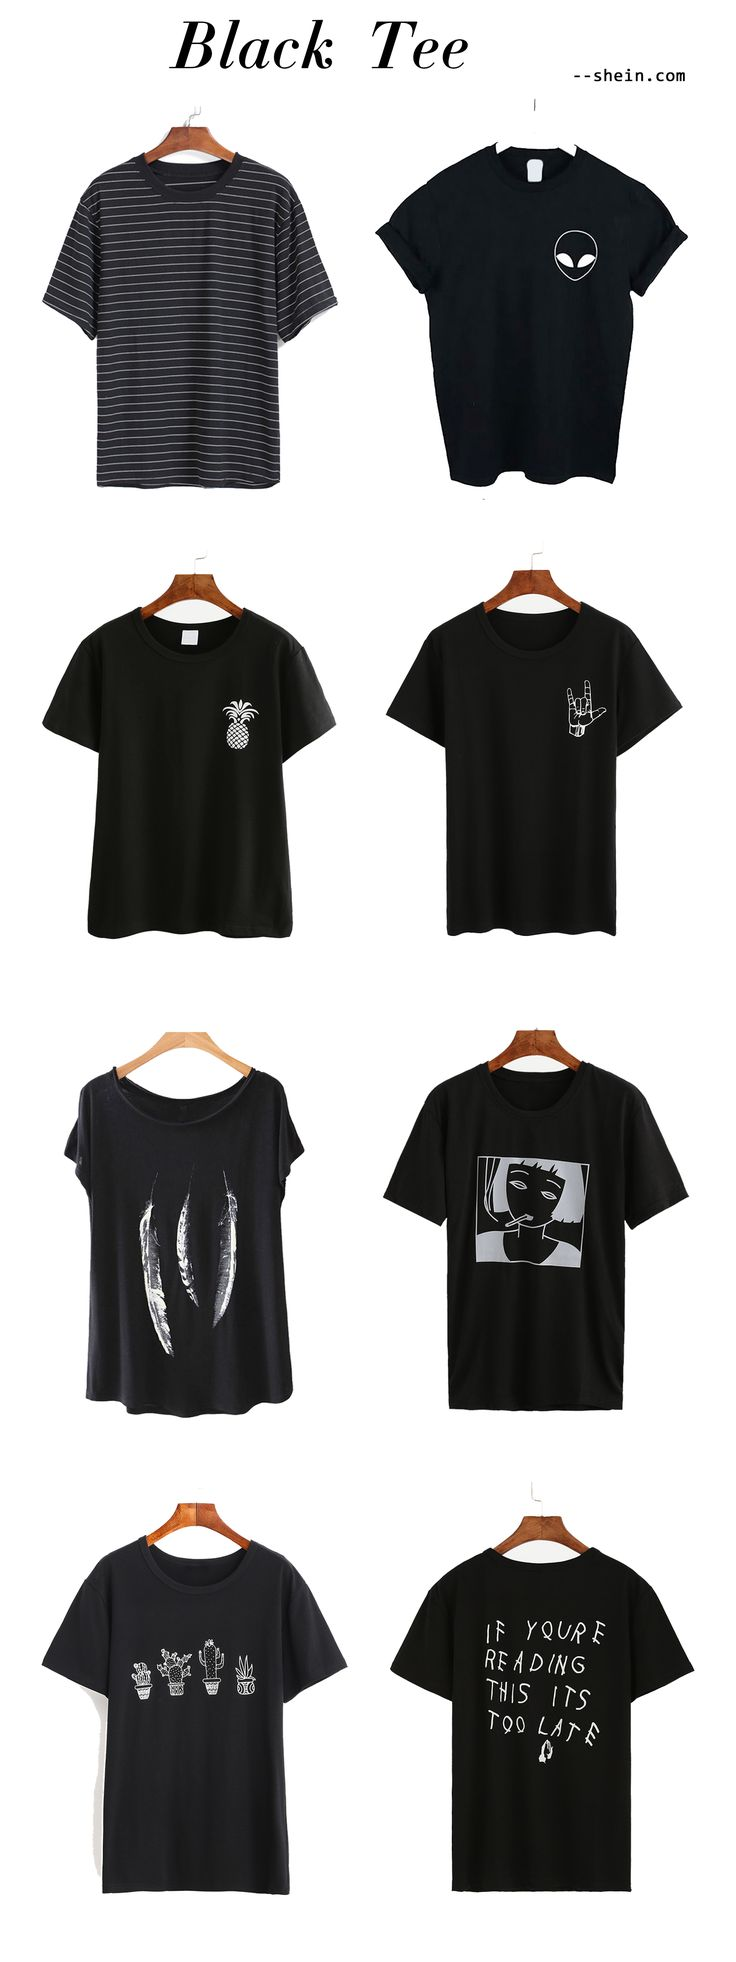 Finally i have all of these in my closet! Love black tee for it's so versatile & stylish! Love shein!